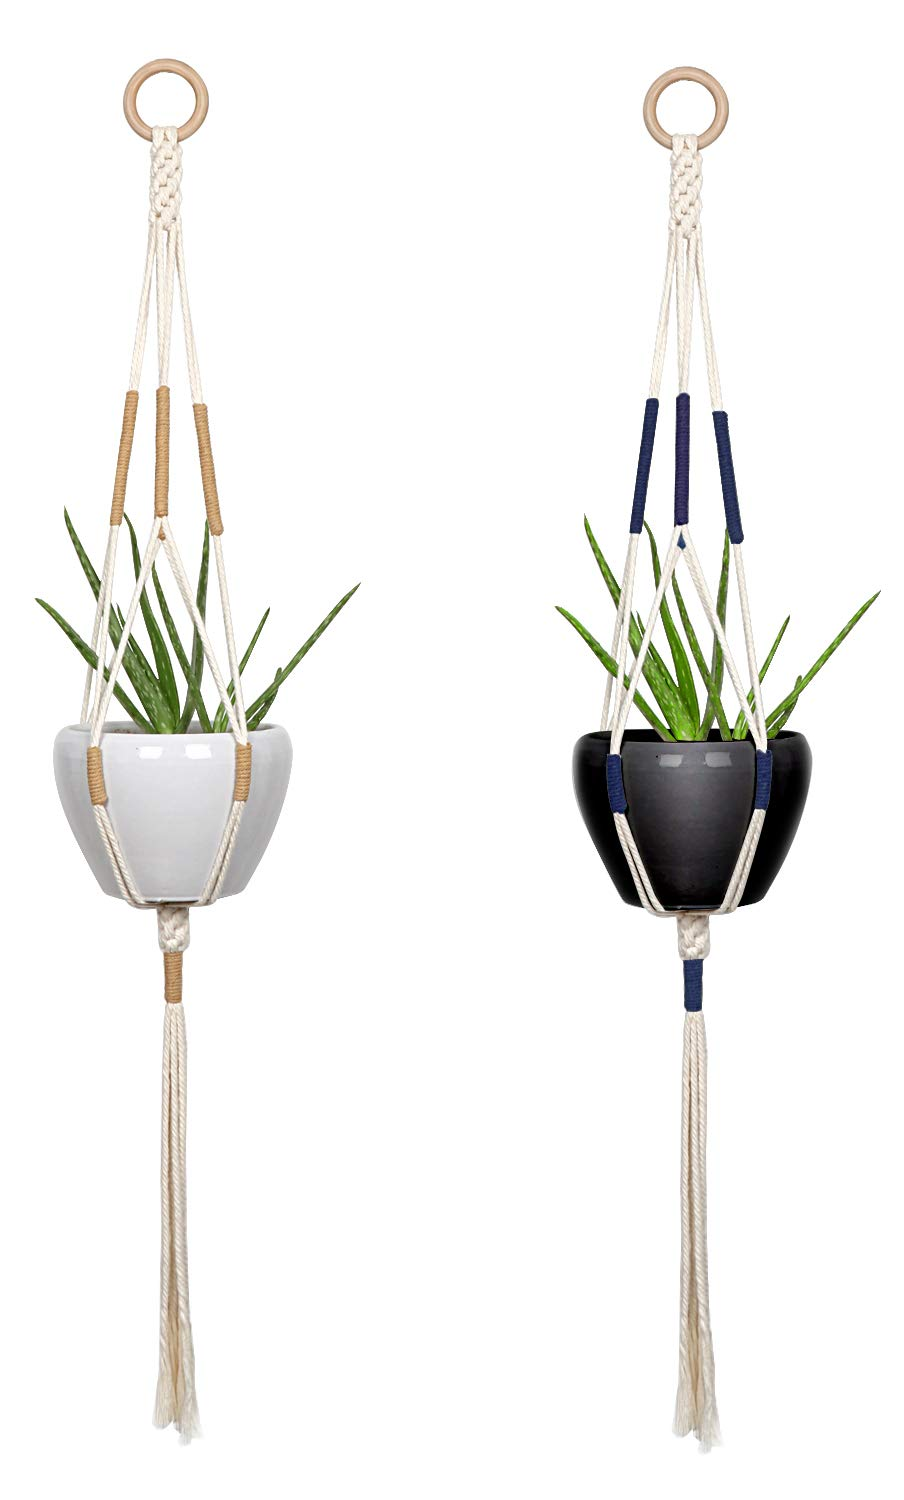 Macrame Plant Hangers - Hanging Planter Indoor Outdoor - Cotton Plant Basket Holder with Khaki and Blue in Details 41 Inch, Boho Decor